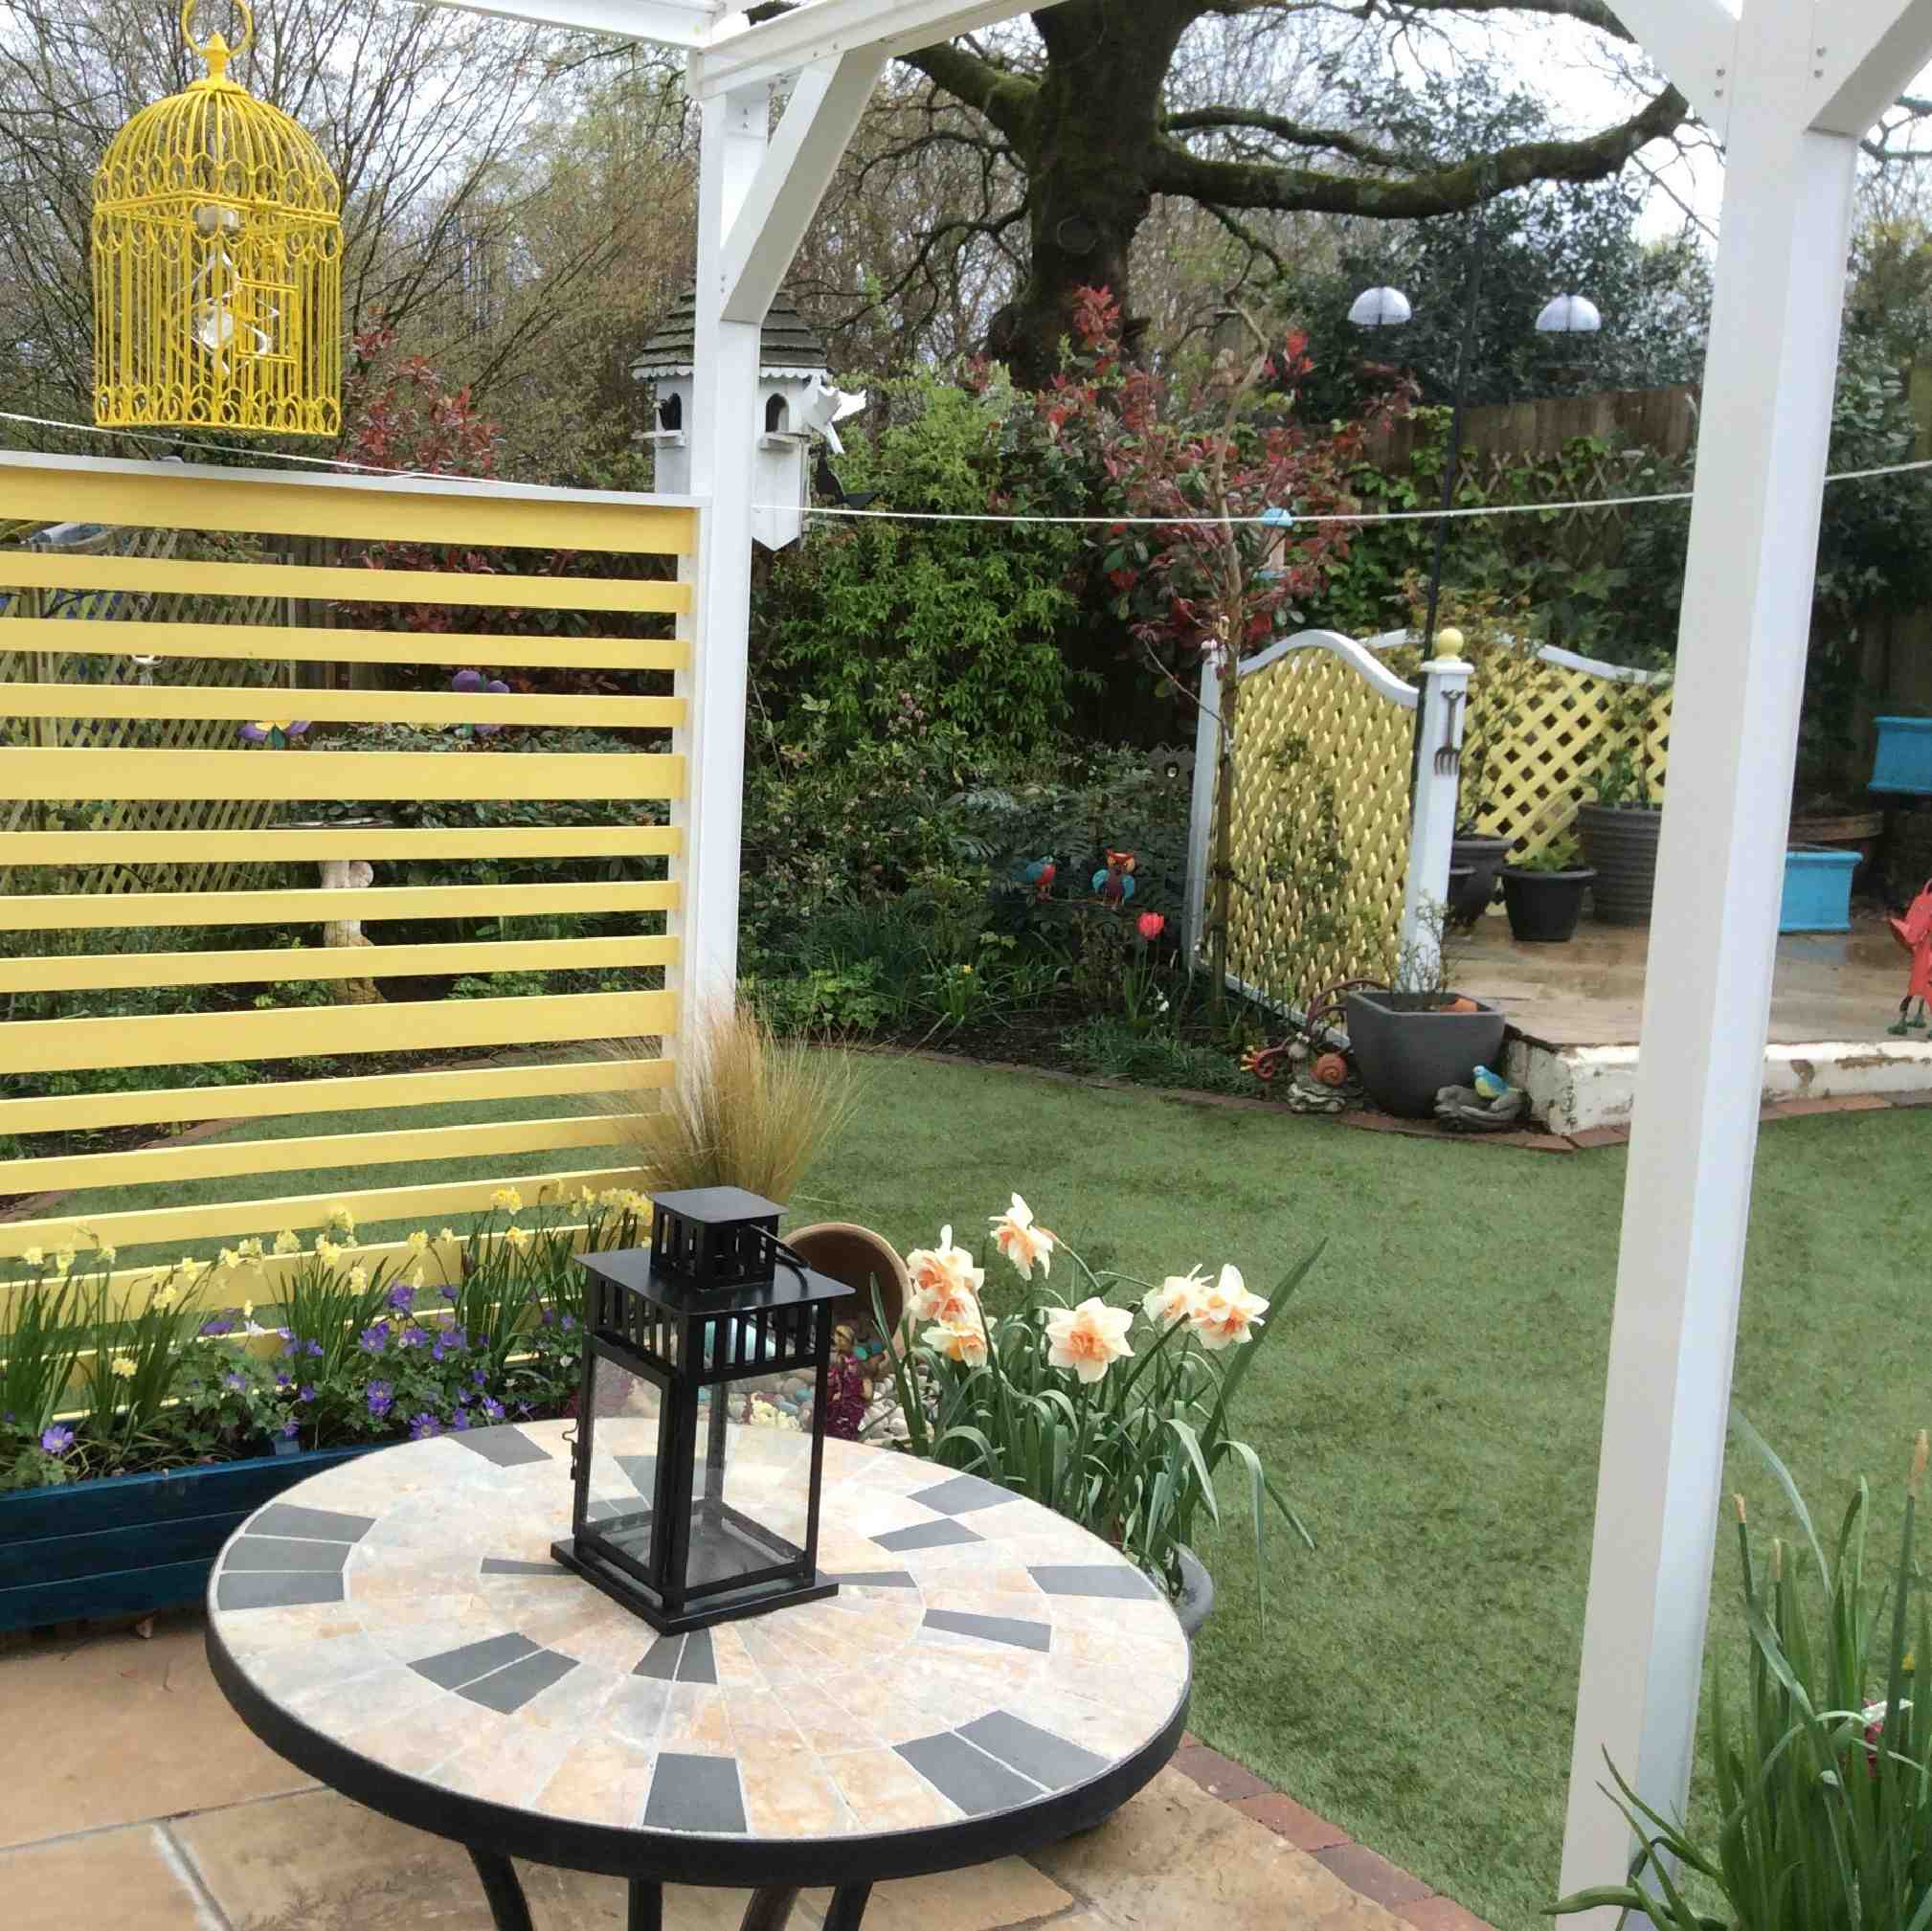 Omega Verandah with 16mm Polycarbonate Glazing - 11.2m (W) x 4.5m (P), (5) Supporting Posts from Omega Build